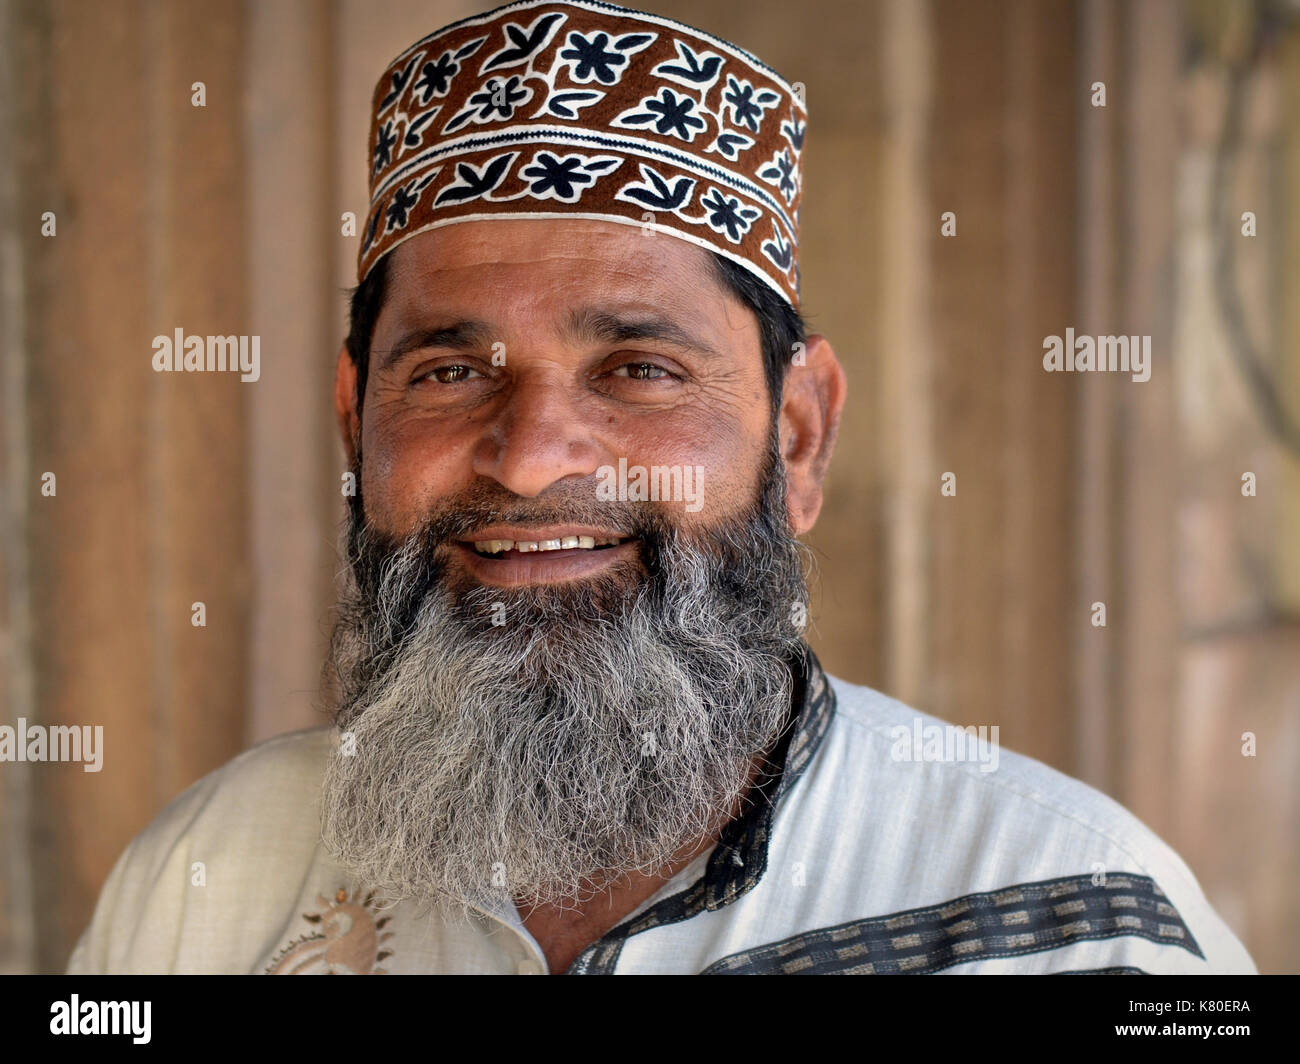 Middle-aged Indian Muslim man with Muslim-style trimmed full beard, wearing a patterned Islamic prayer cap (taqiyah) from Oman - Stock Image